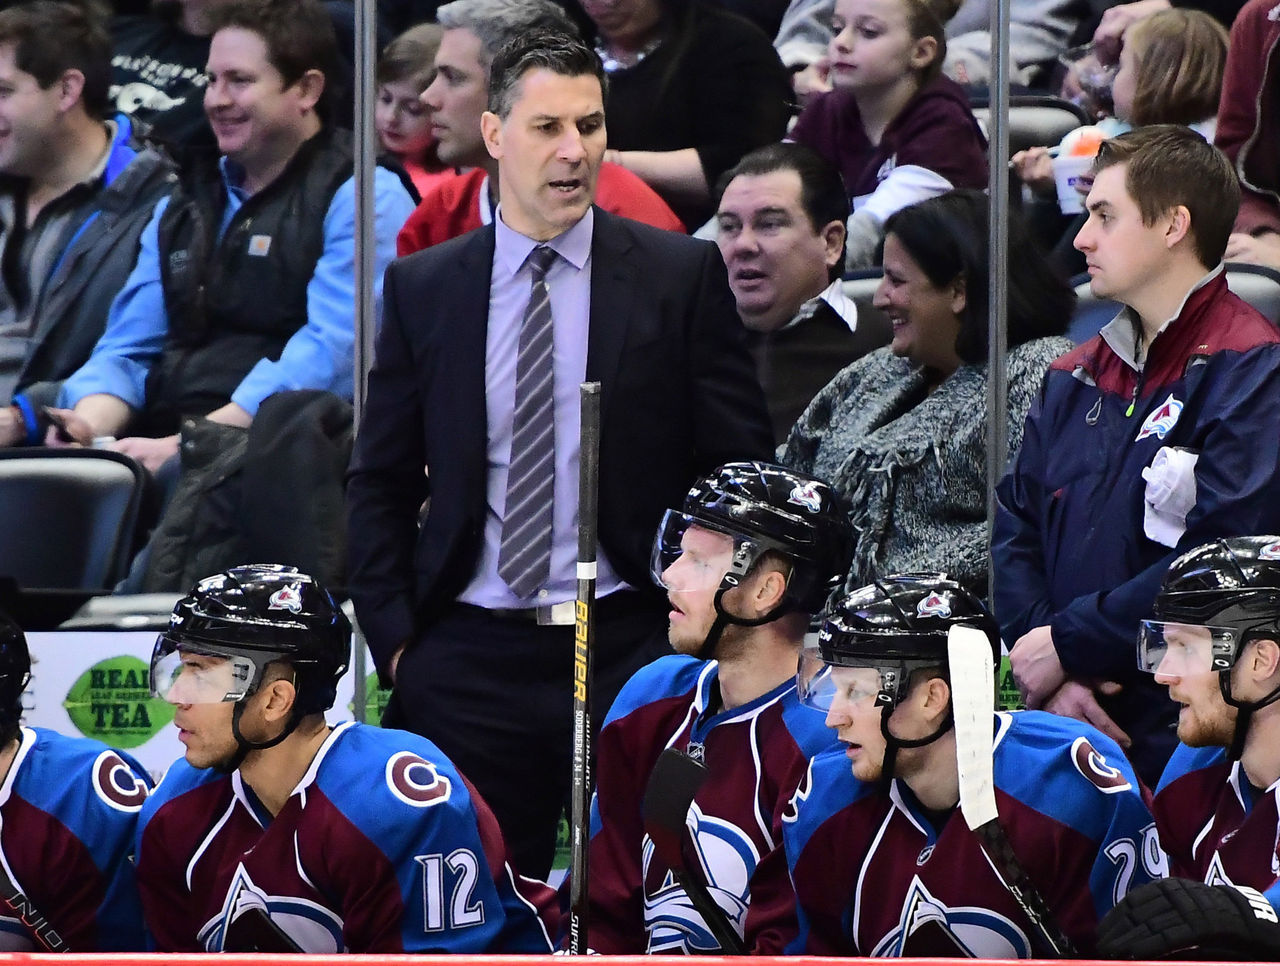 Cropped 2017 02 08t040228z 1206711169 nocid rtrmadp 3 nhl montreal canadiens at colorado avalanche